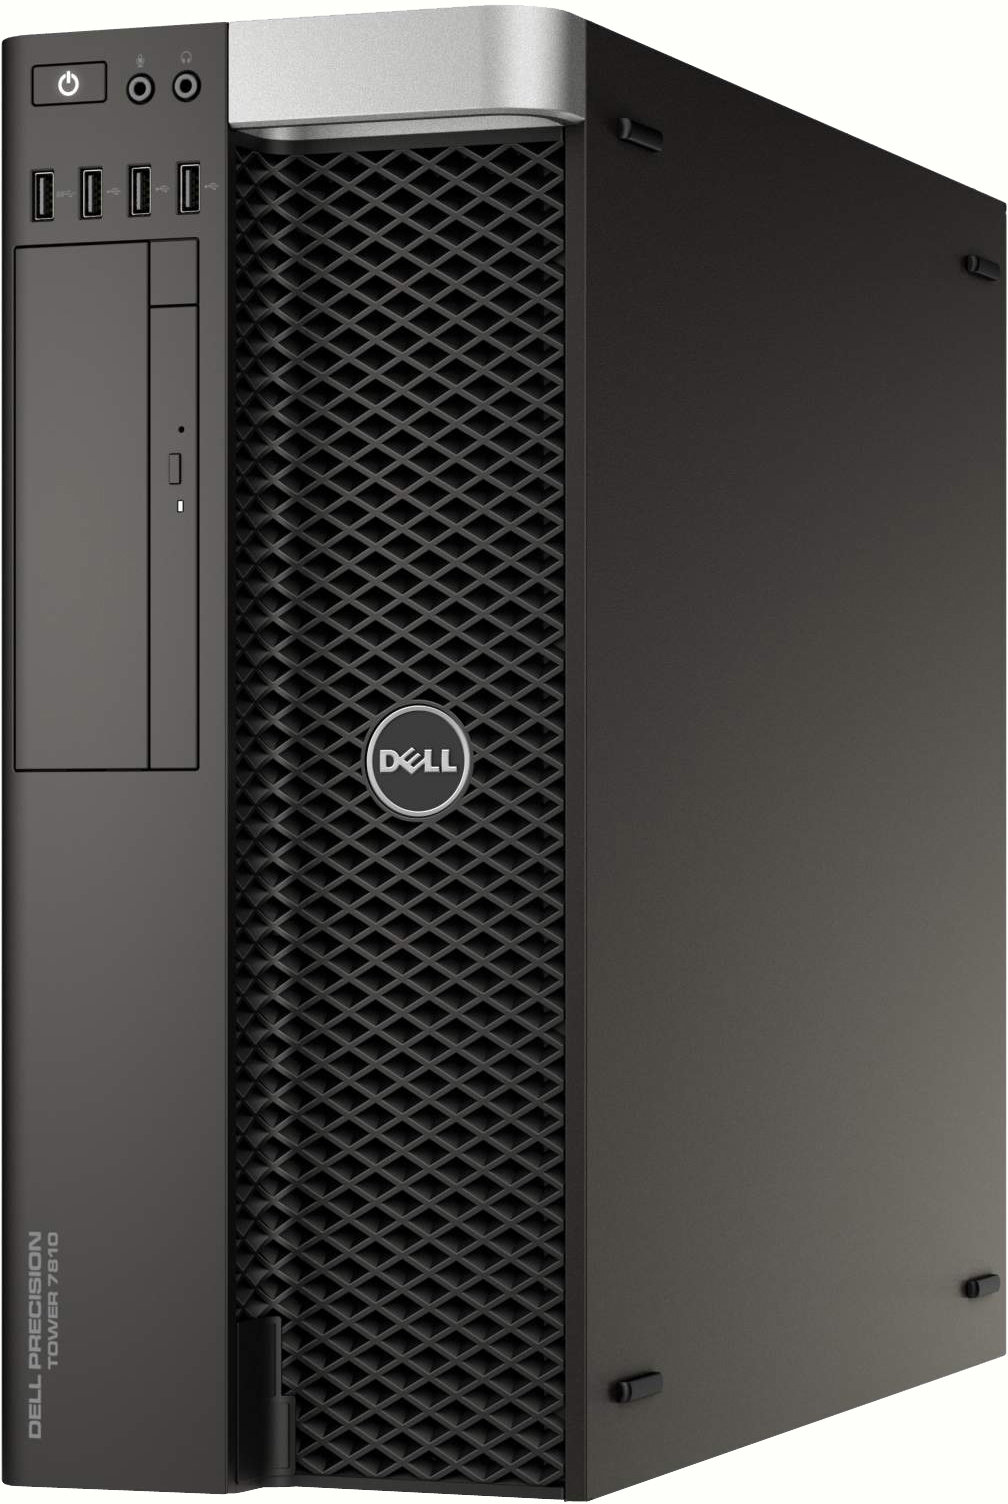 Dell Precision T5810 TWR